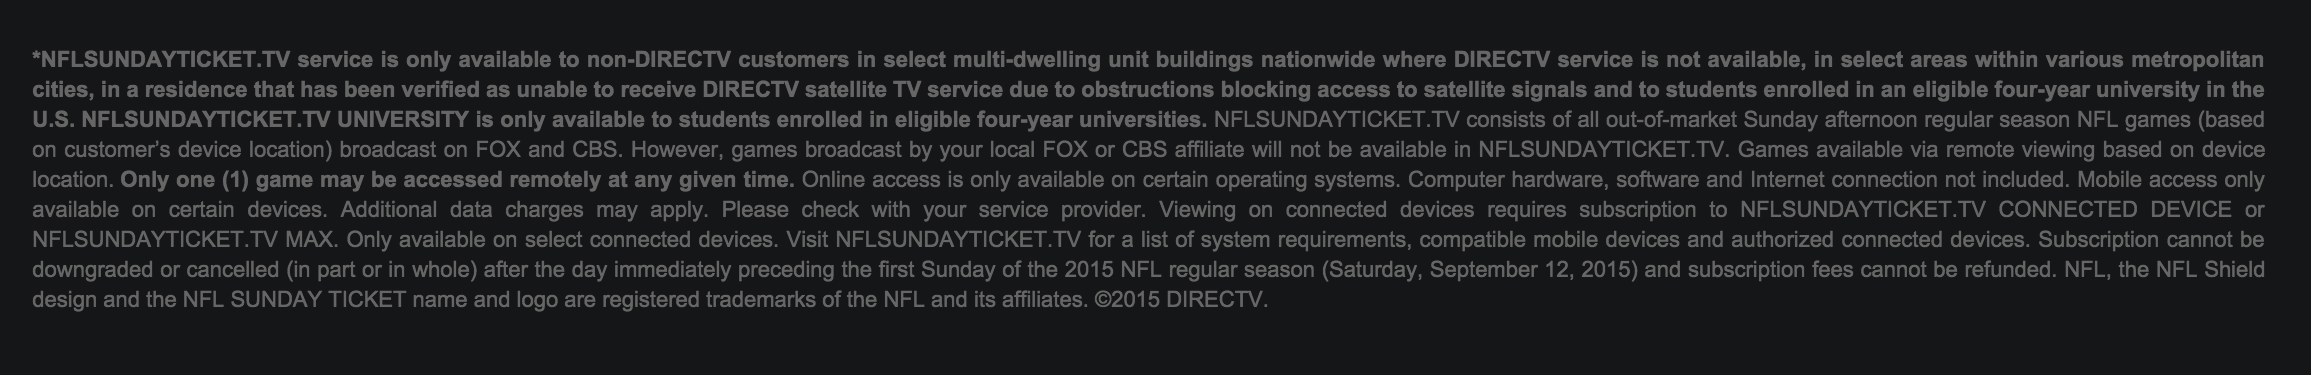 how to get a discount on nfl sunday ticket